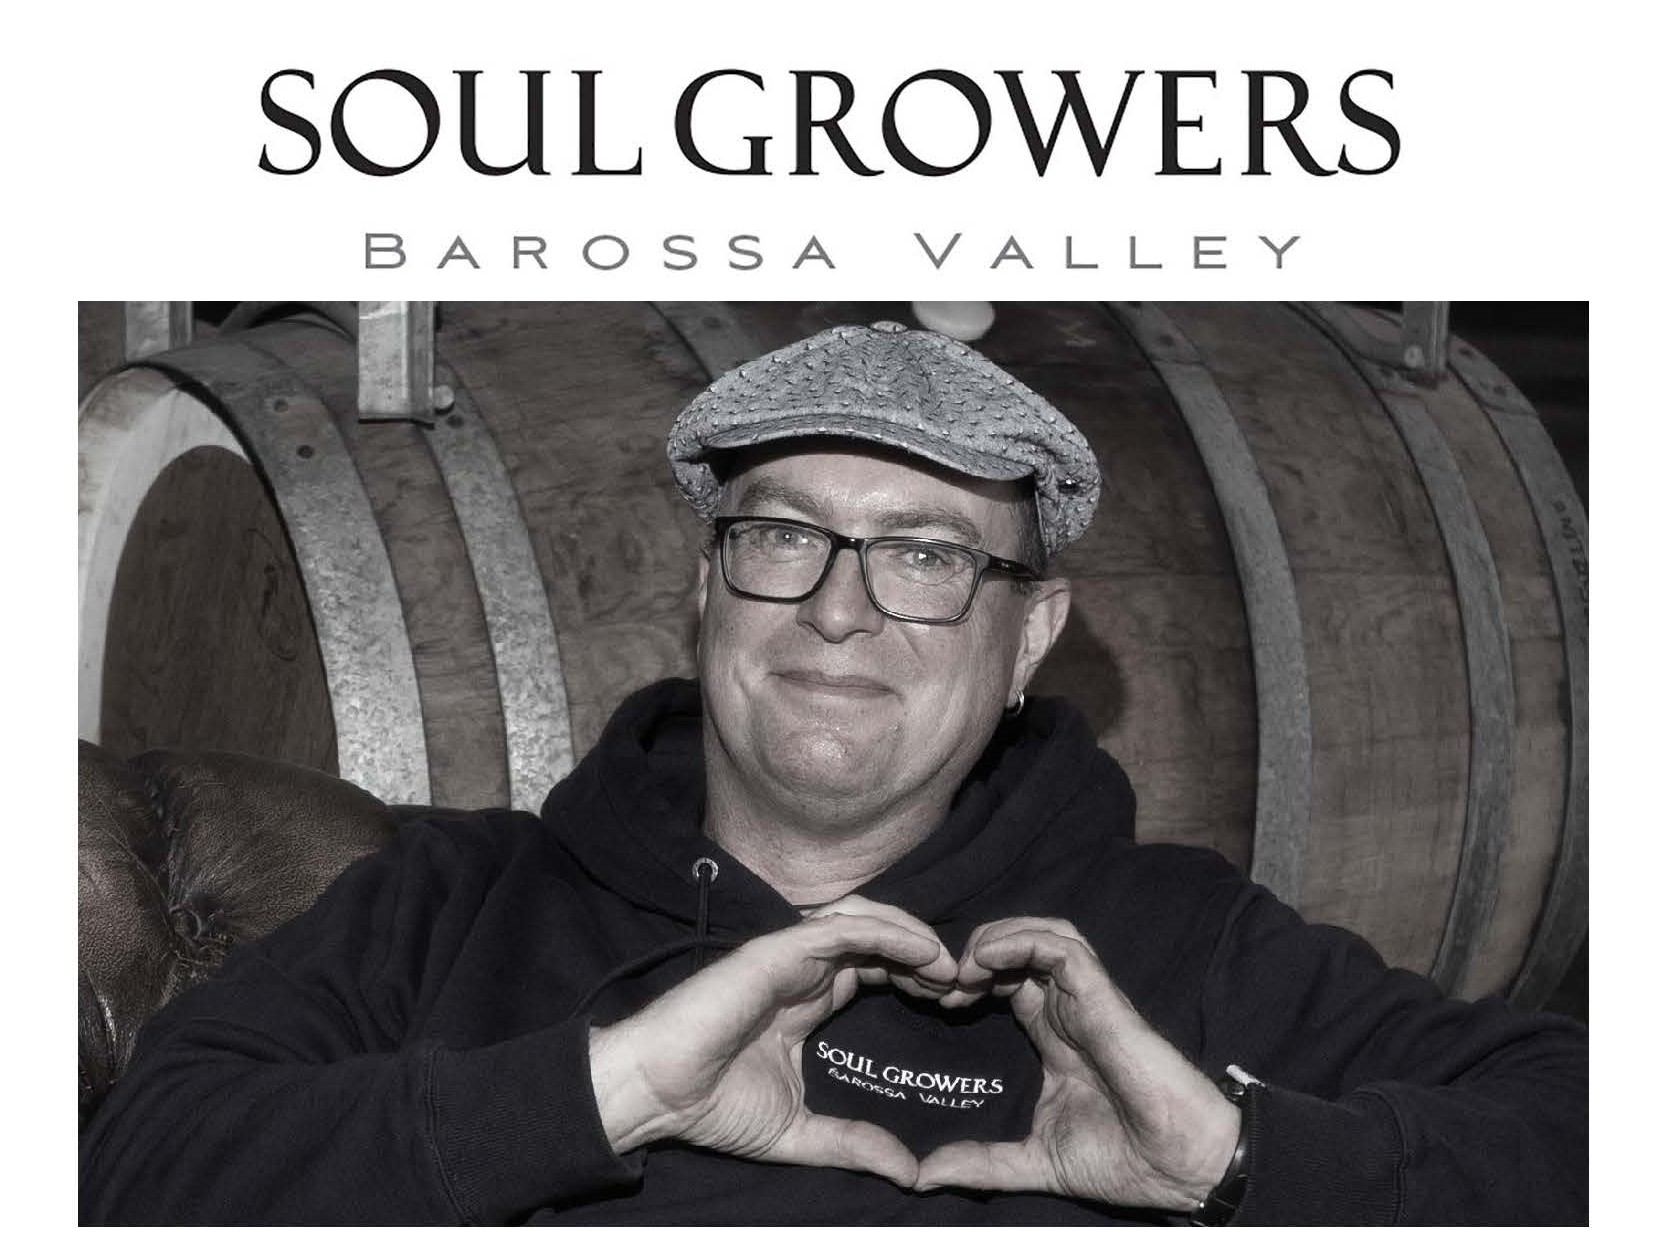 CONGRATULATIONS TO STUART BOURNE 2020 BAROSSA WINEMAKER OF THE YEAR (SOUL GROWERS)